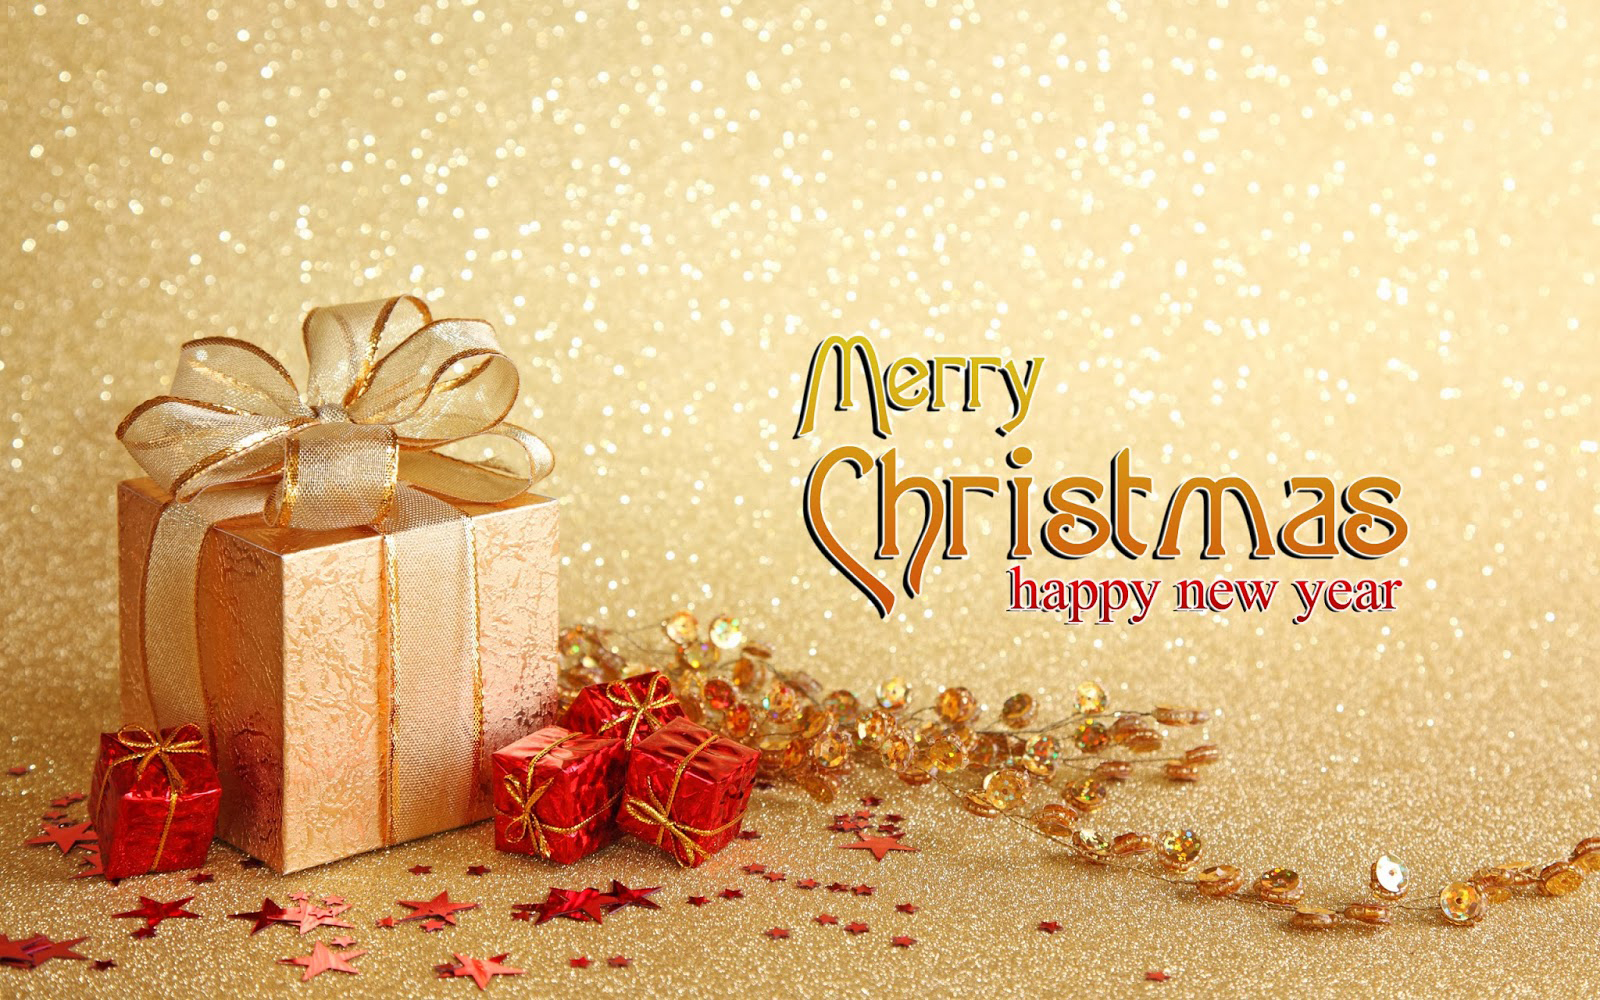 Top 100 Merry Christmas Wishes, Quotes & Messages | Christmas Quotes